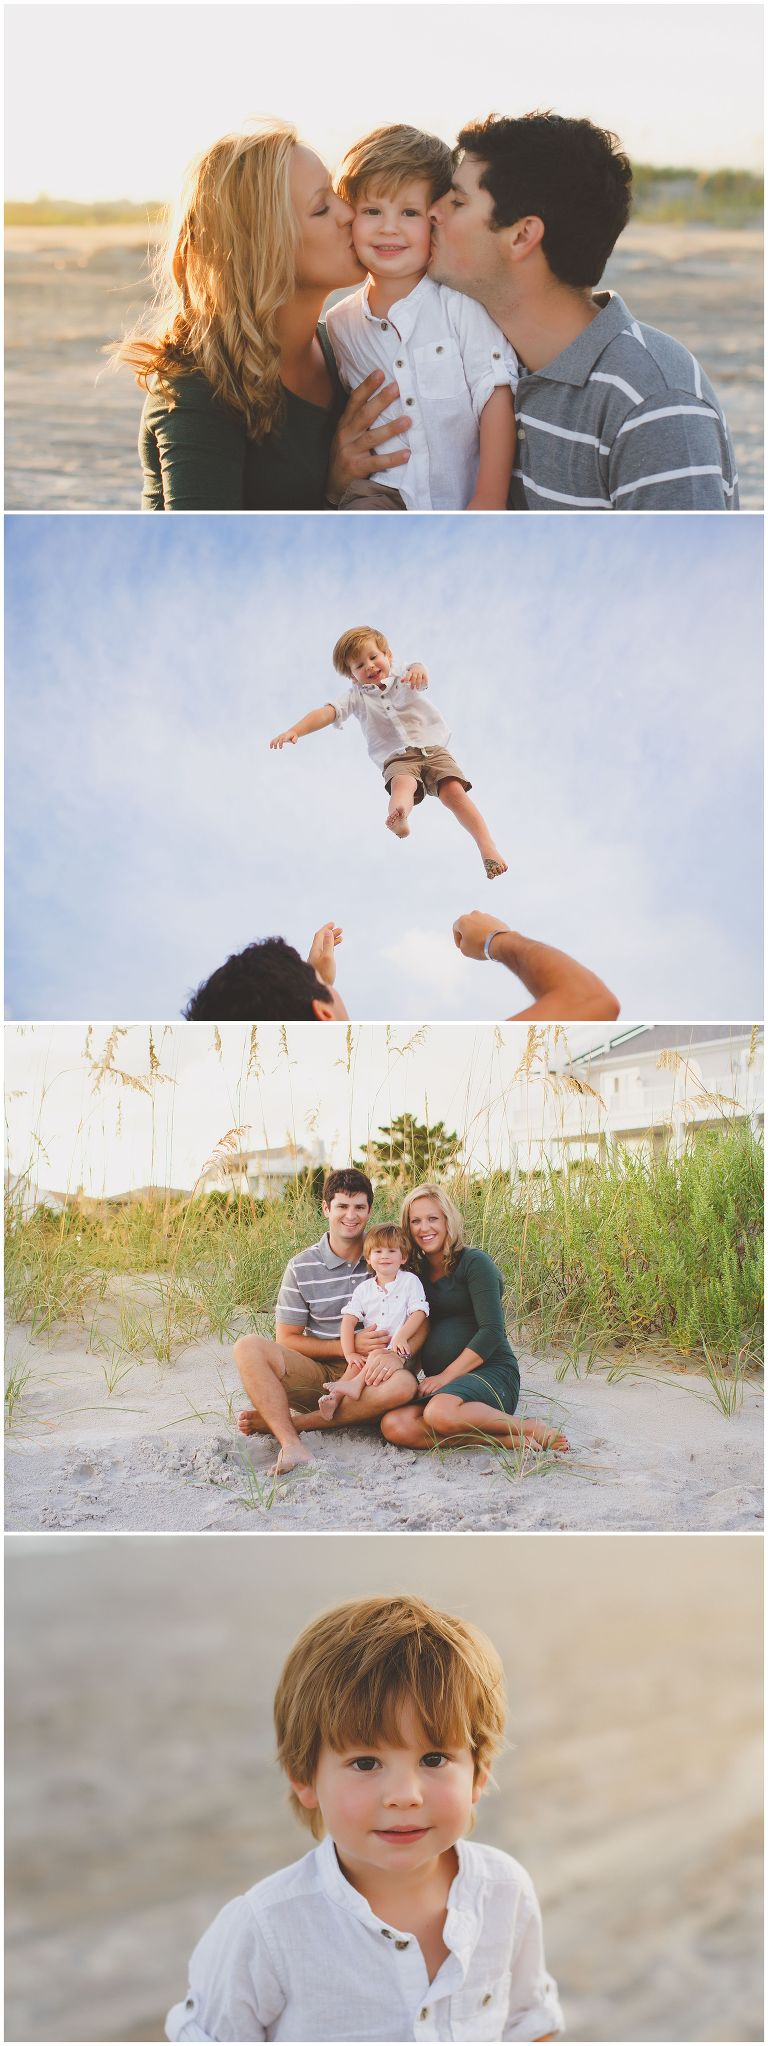 family maternity photography at Wrightsville beach